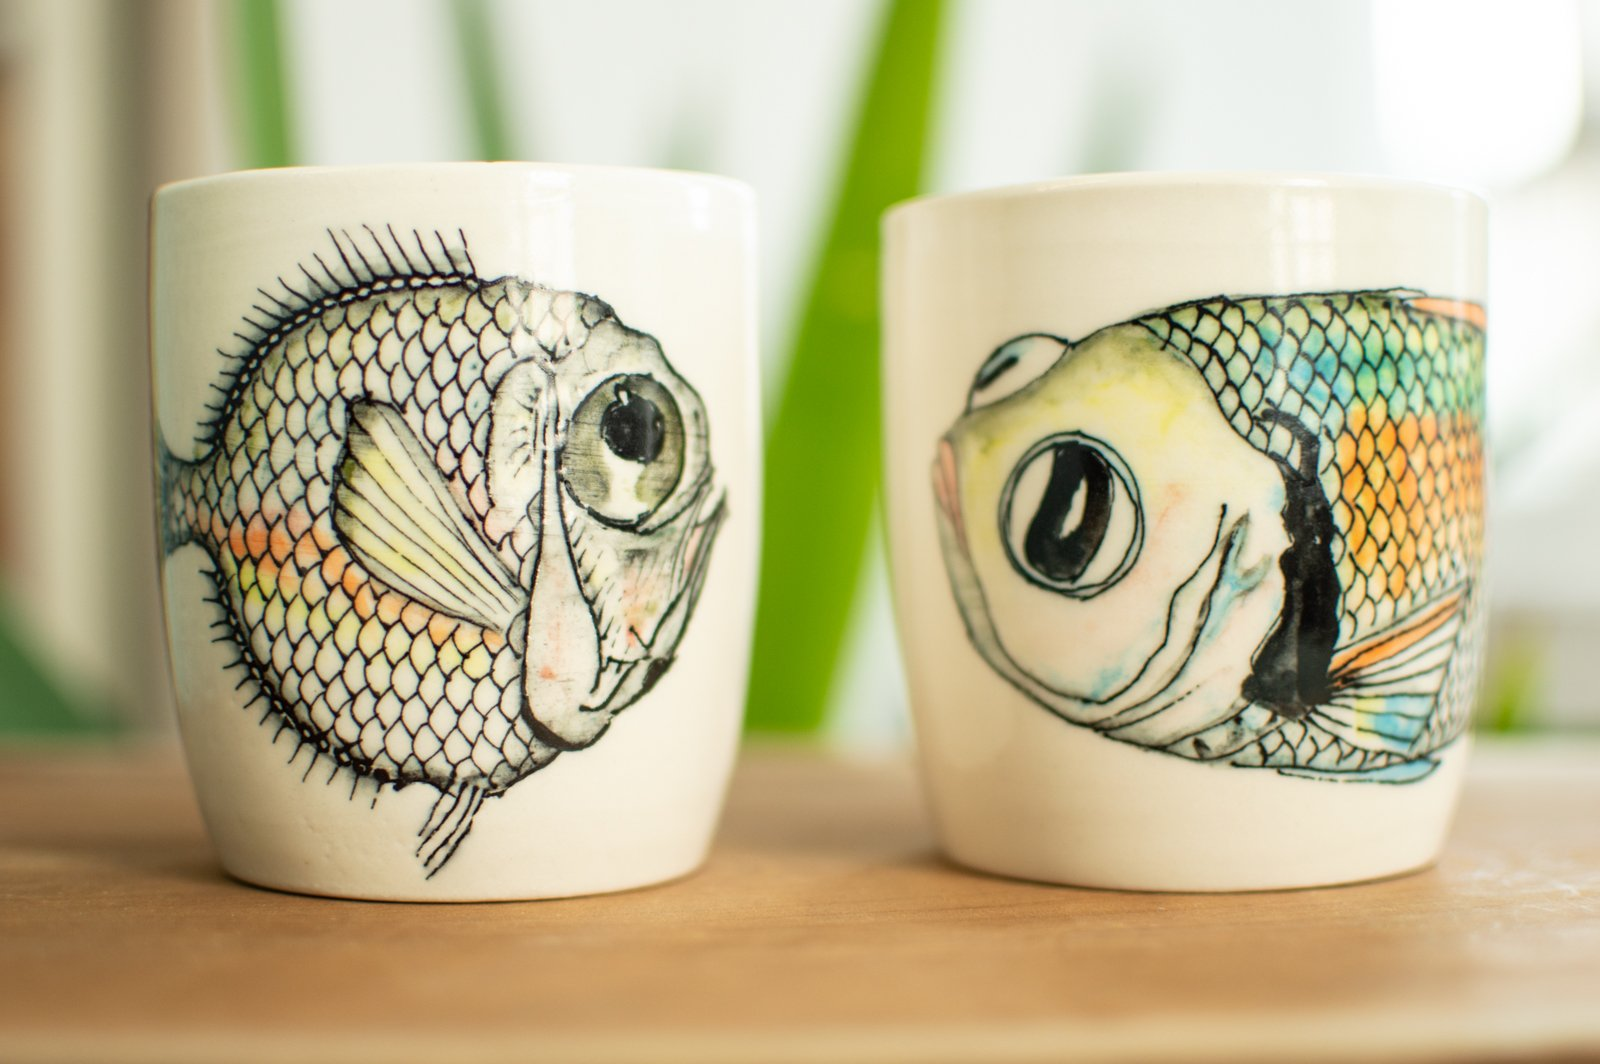 Cups from Dana Powell